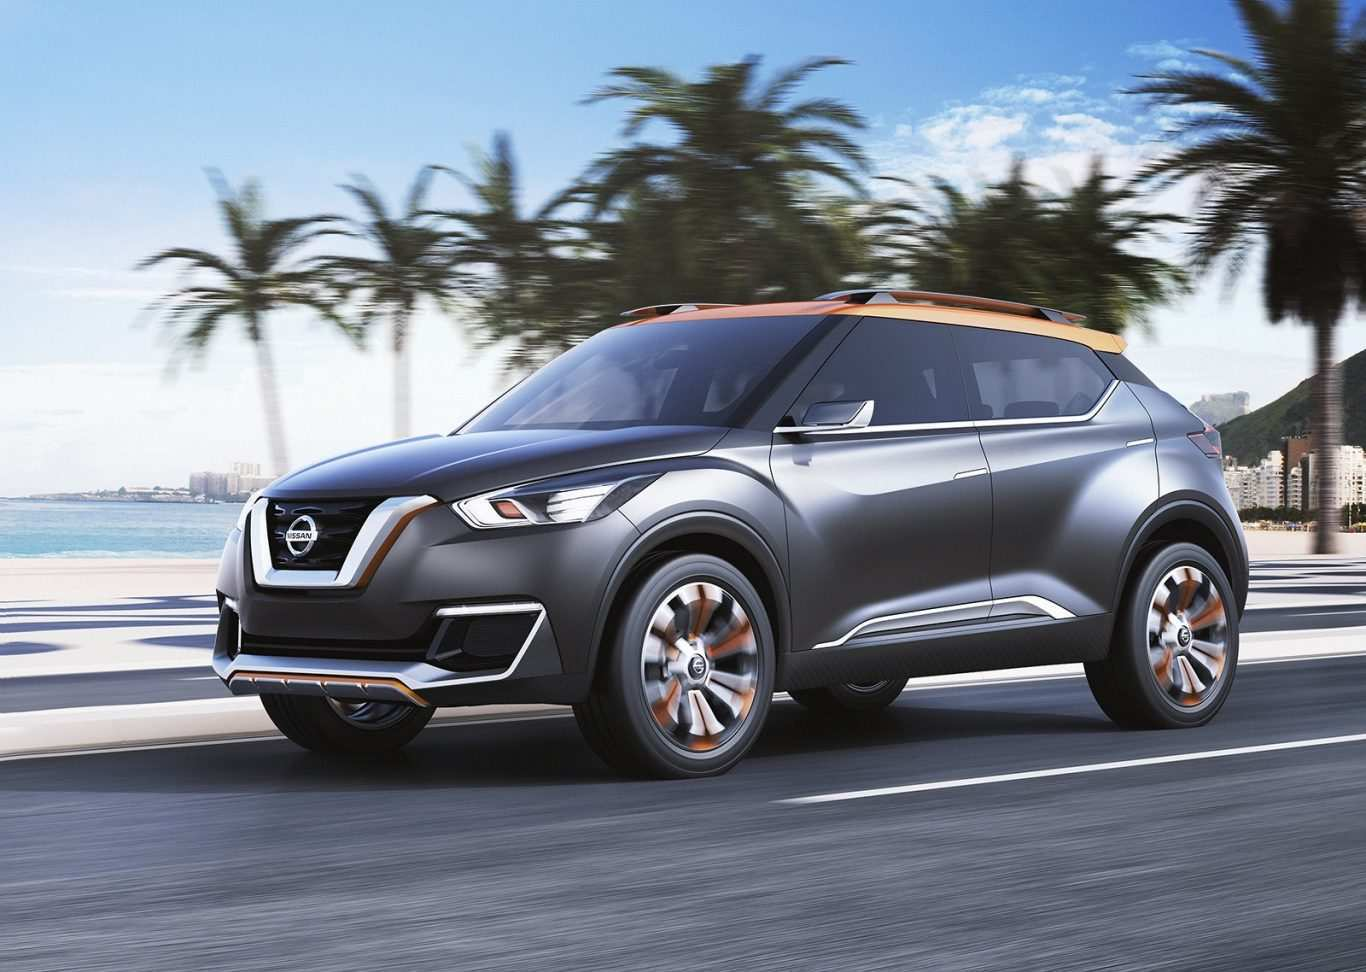 30 New Nissan Kicks 2020 Exterior Price for Nissan Kicks 2020 Exterior